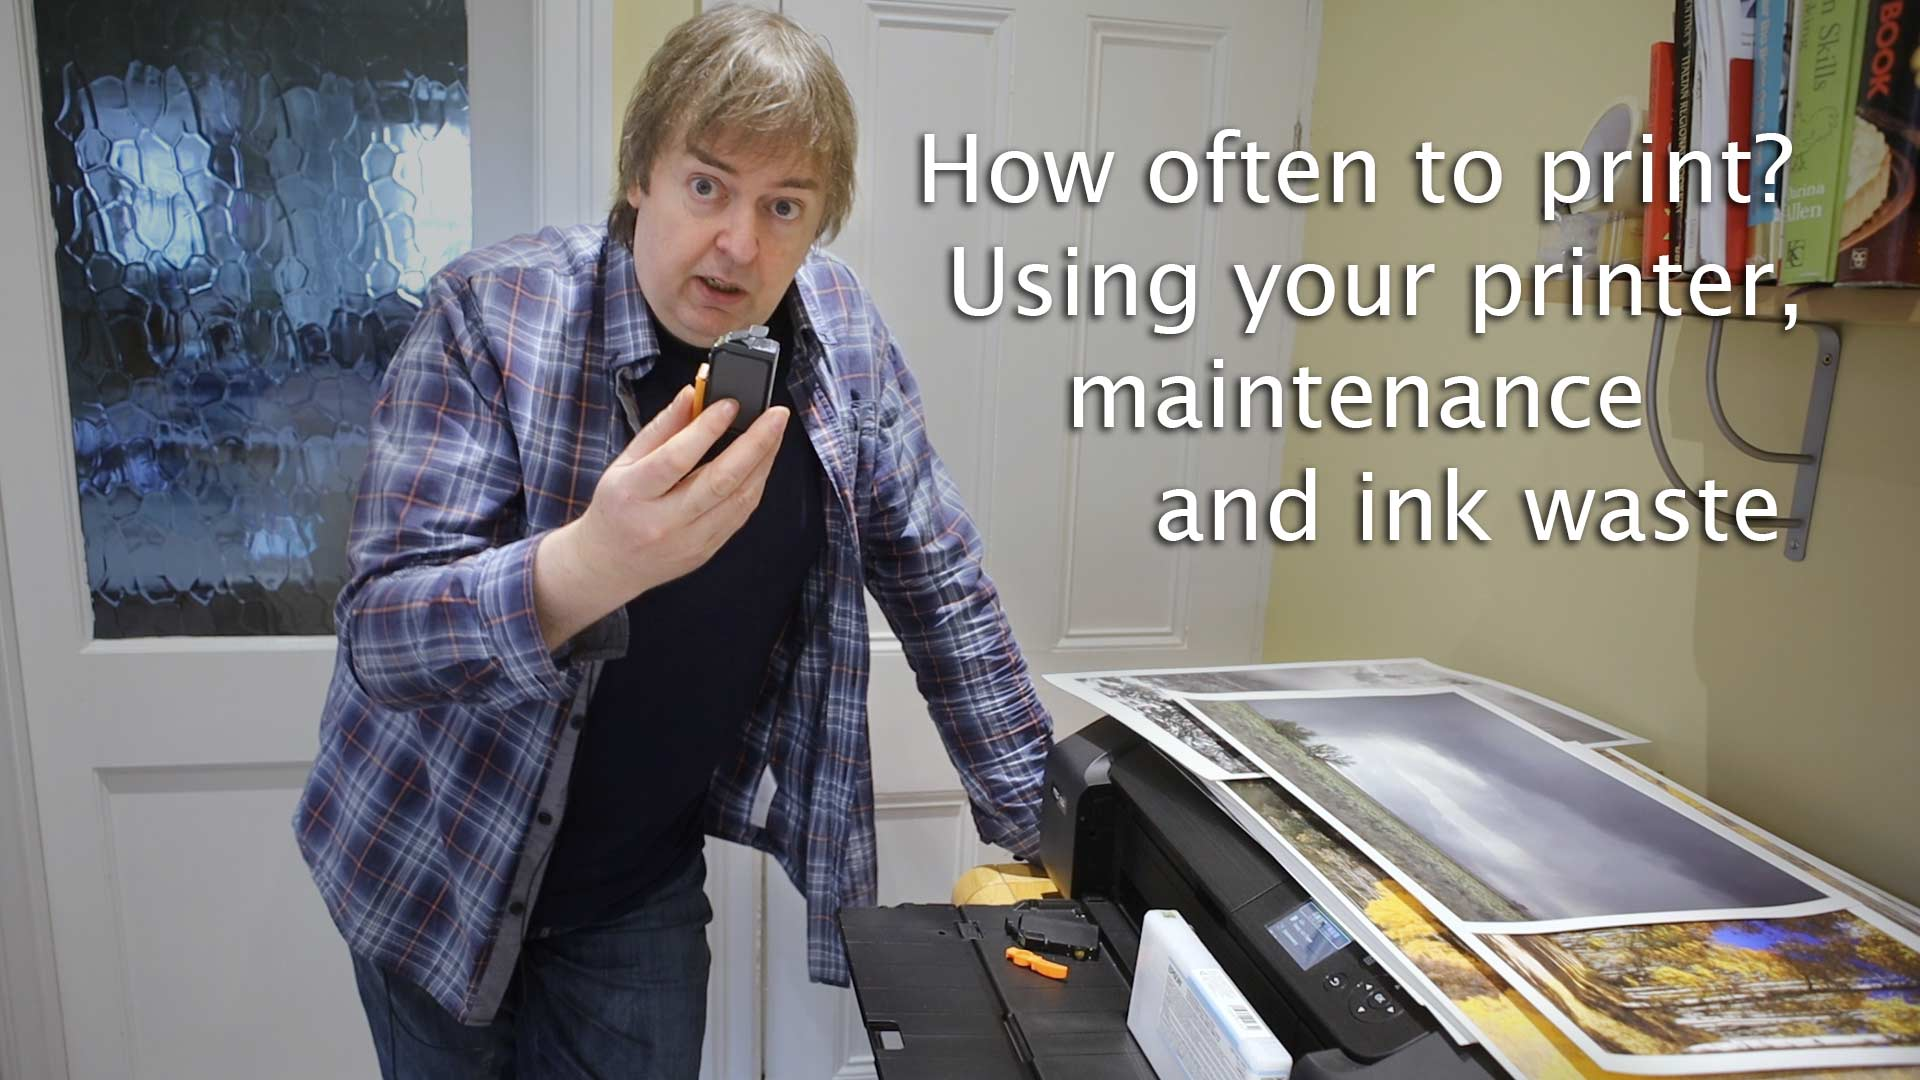 How often do you need to use your printer